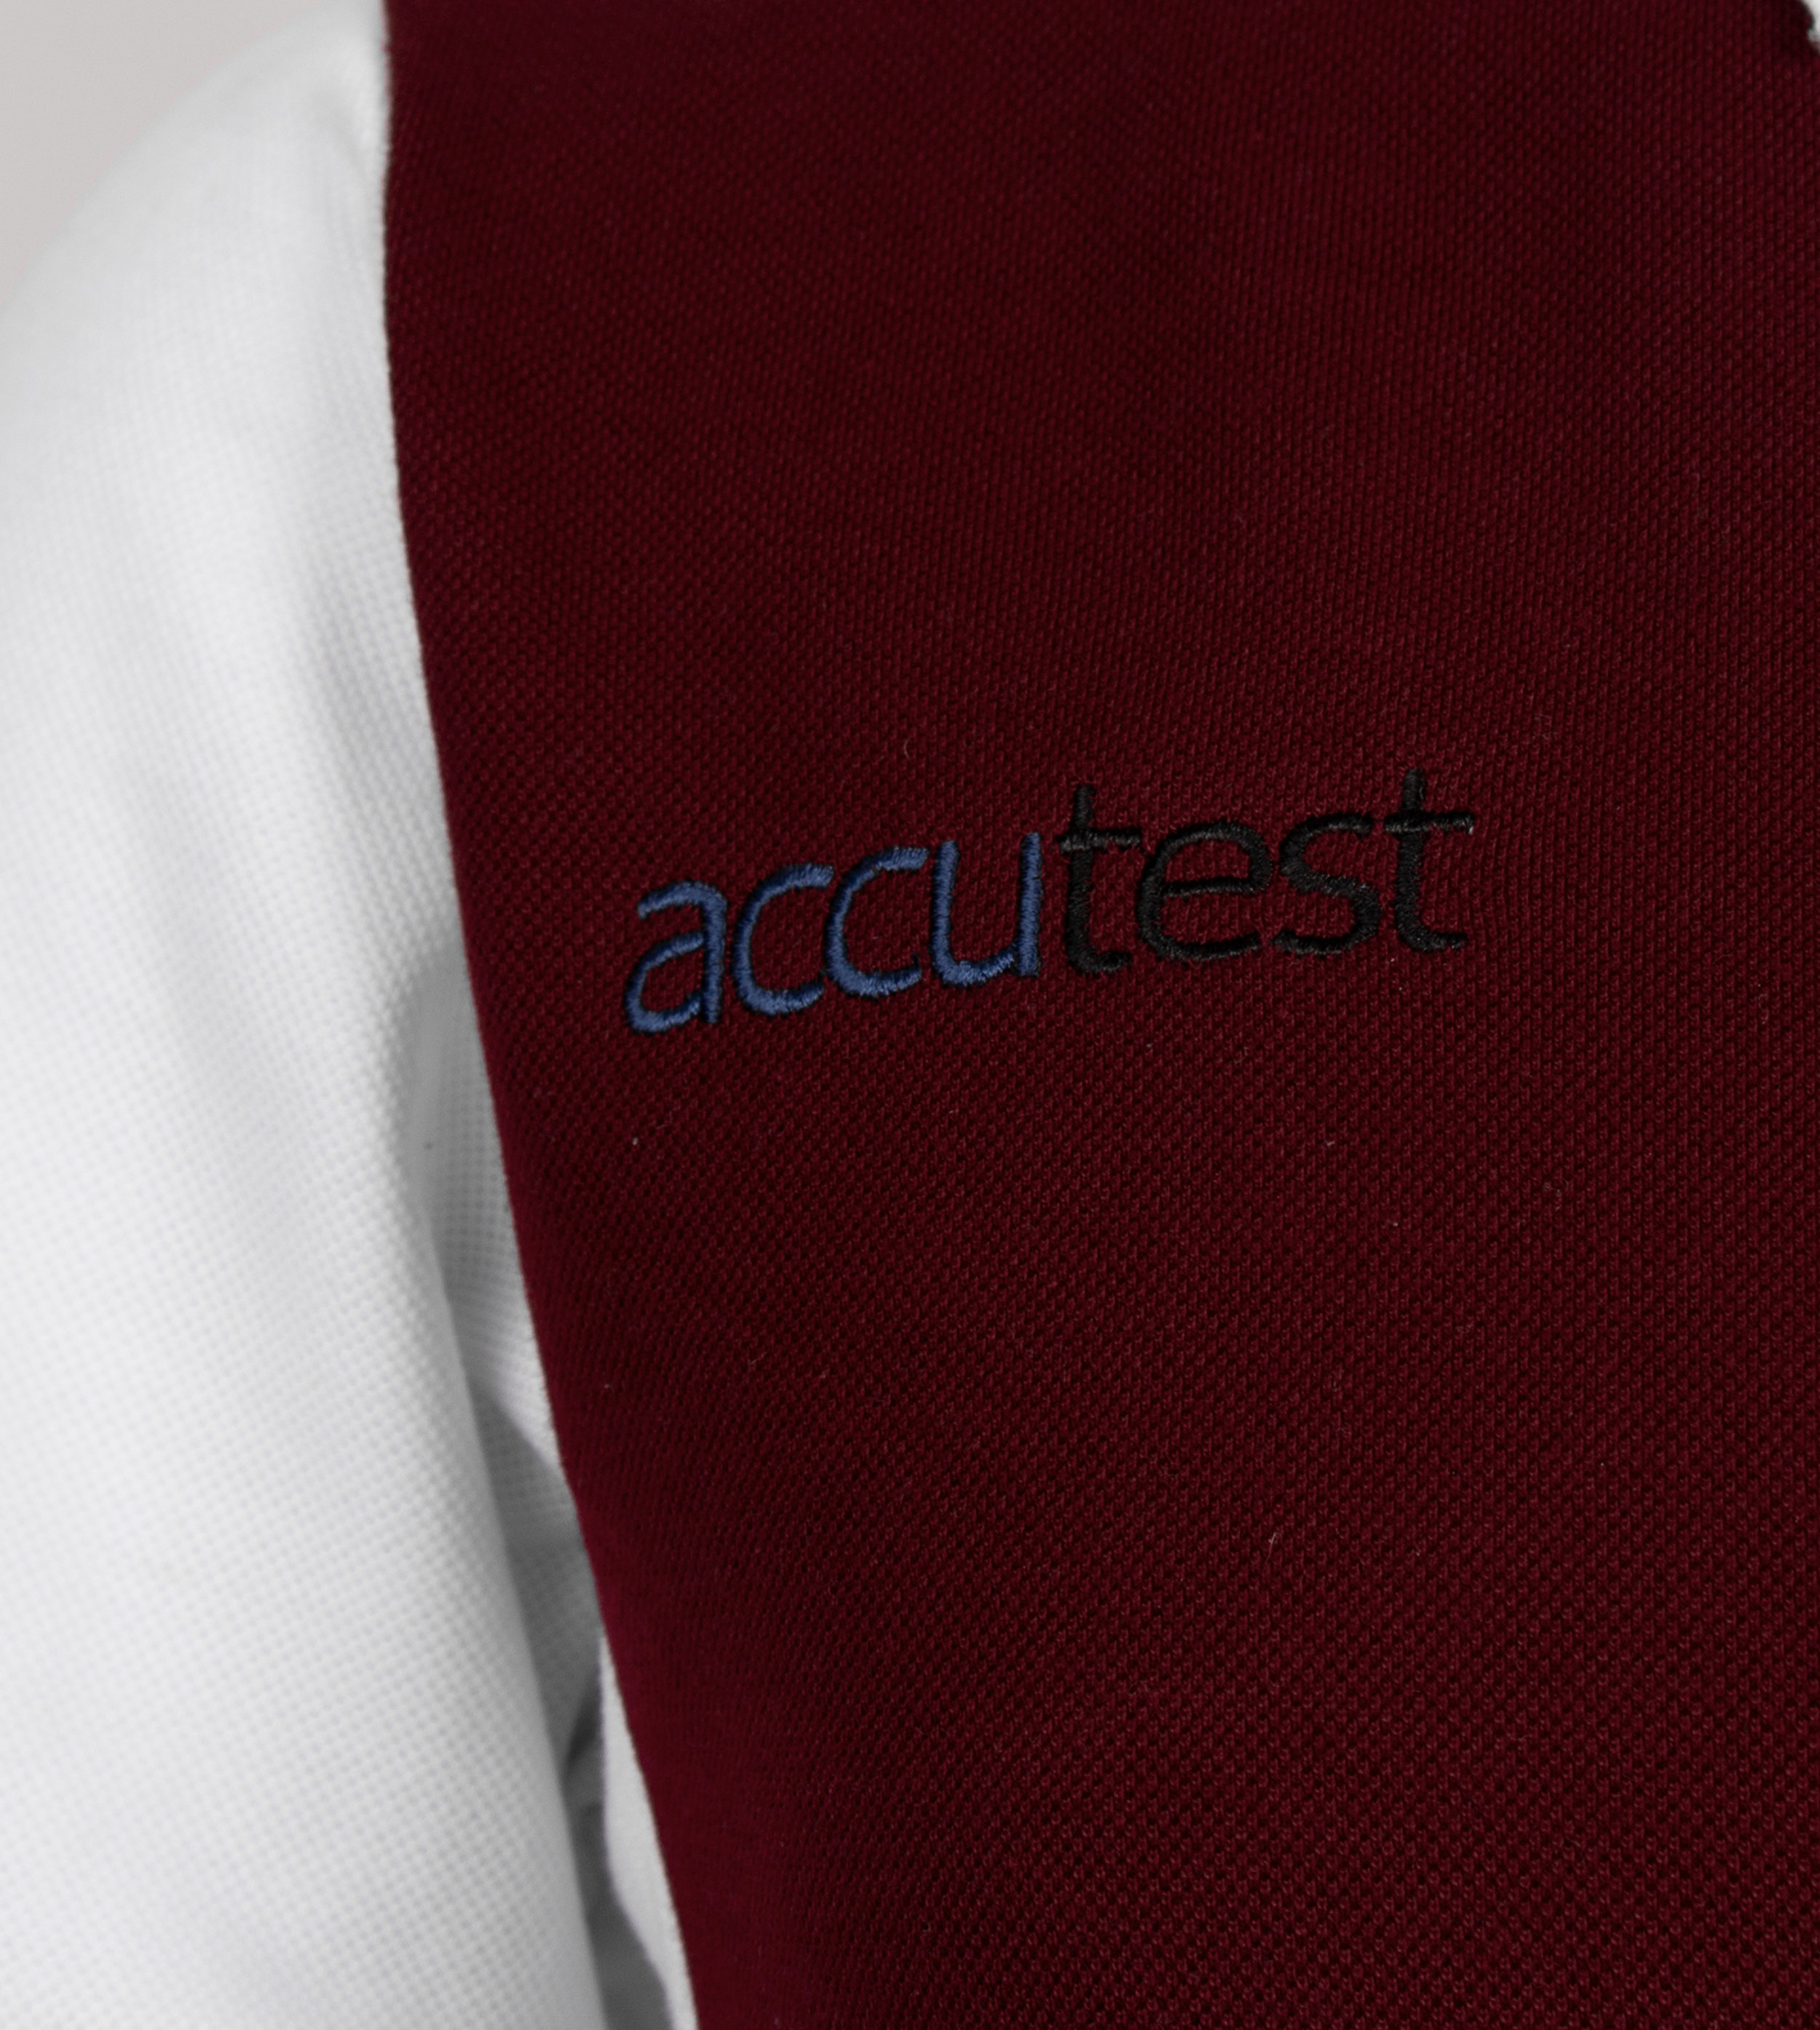 Tailored Projects-Custom Shirt-Polo Shirt-Embroidery2-Accutest.jpg